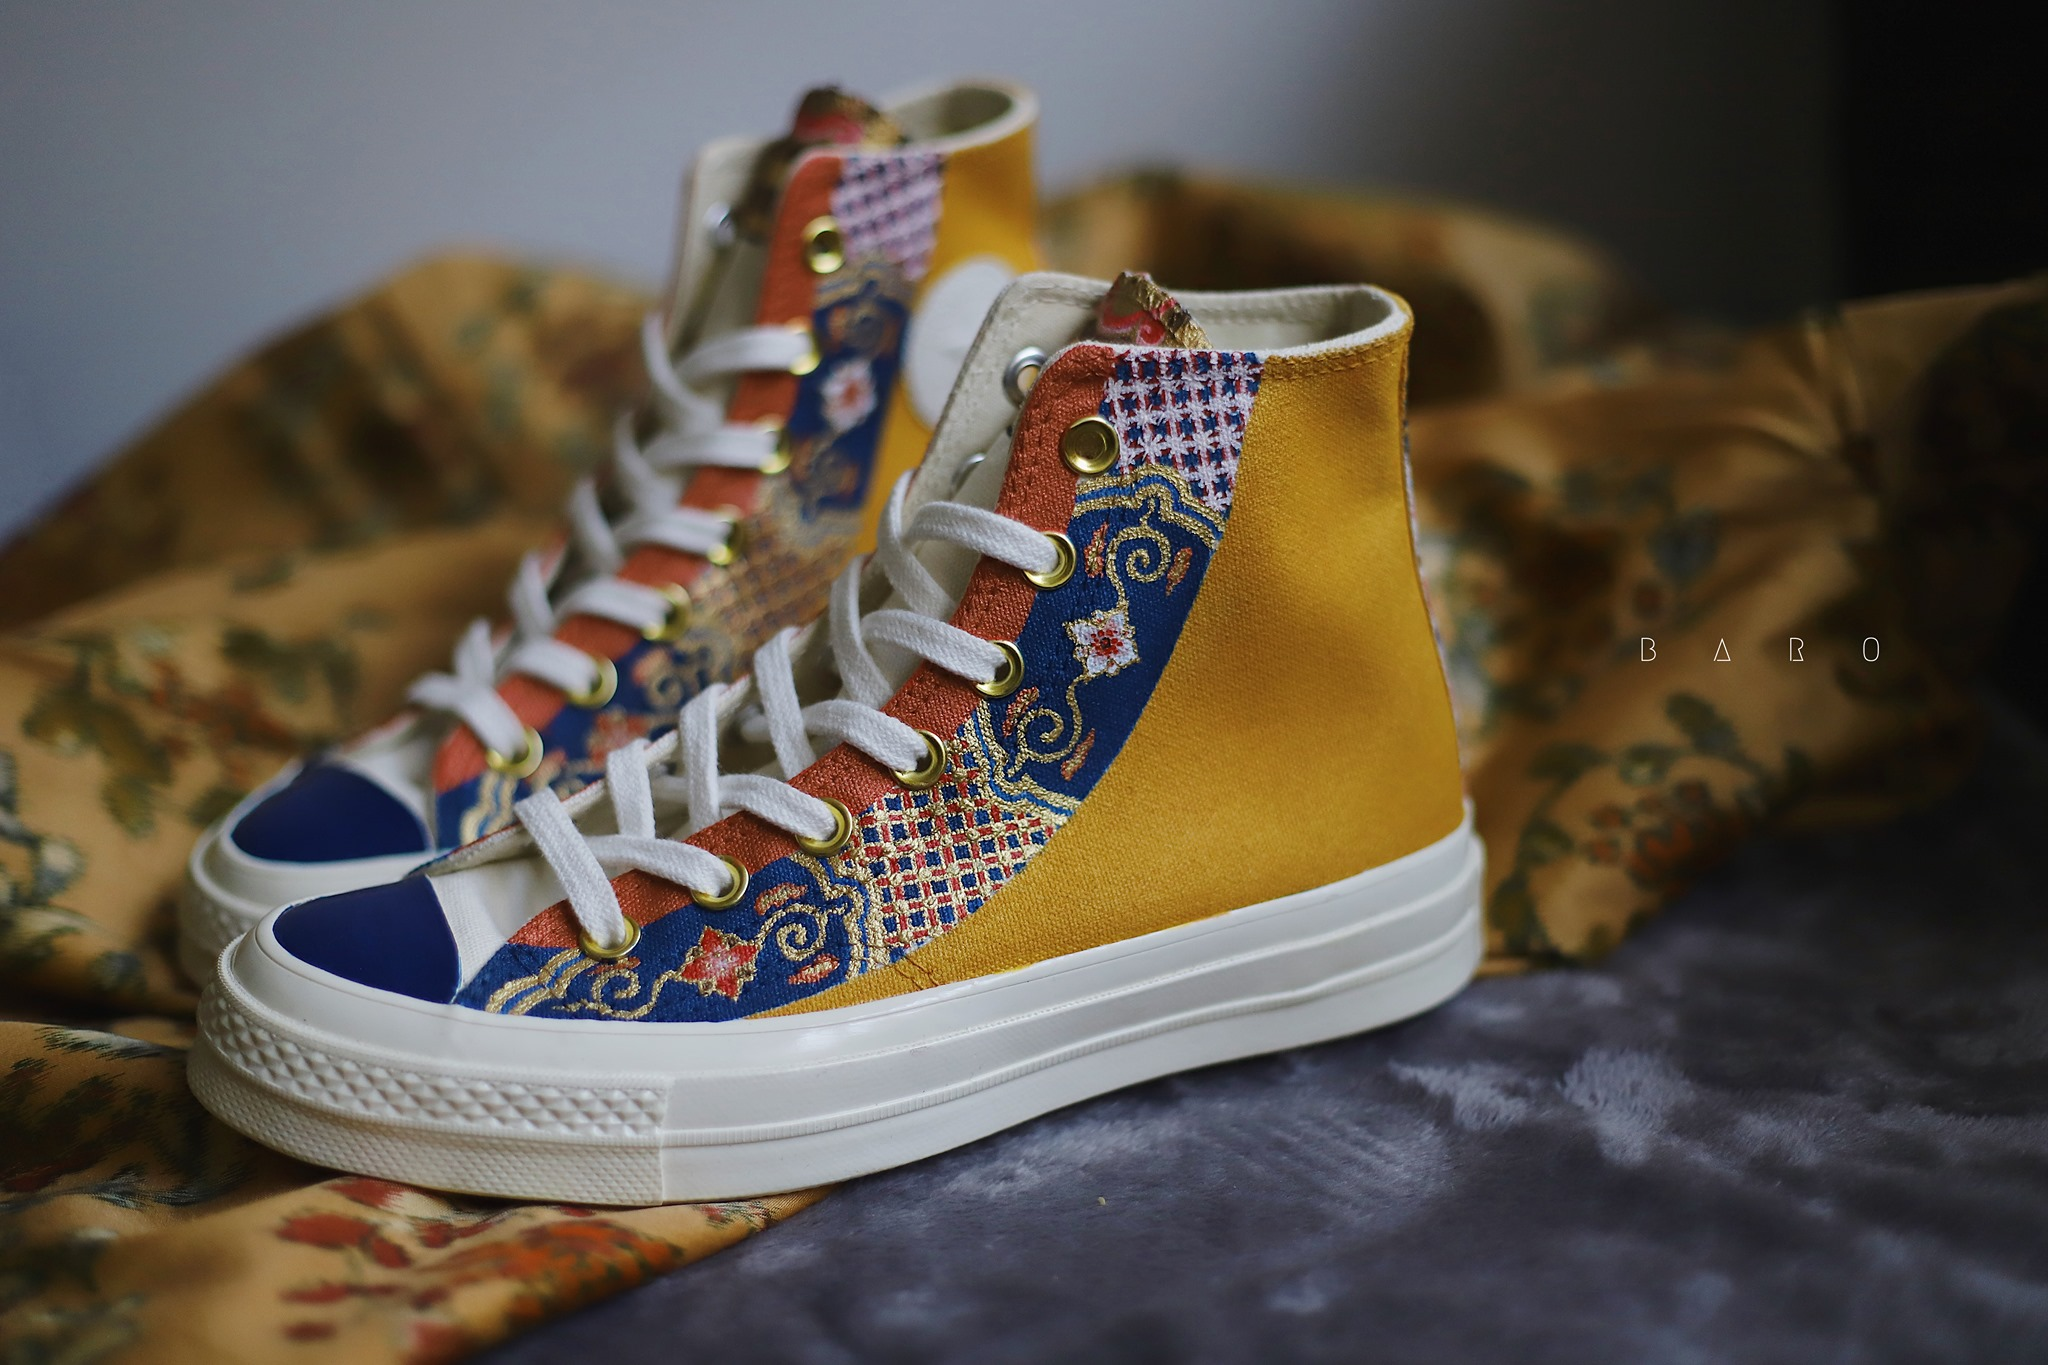 Converse x BARO - When the traditional Nhat Binh shirt is combined with modern sneakers